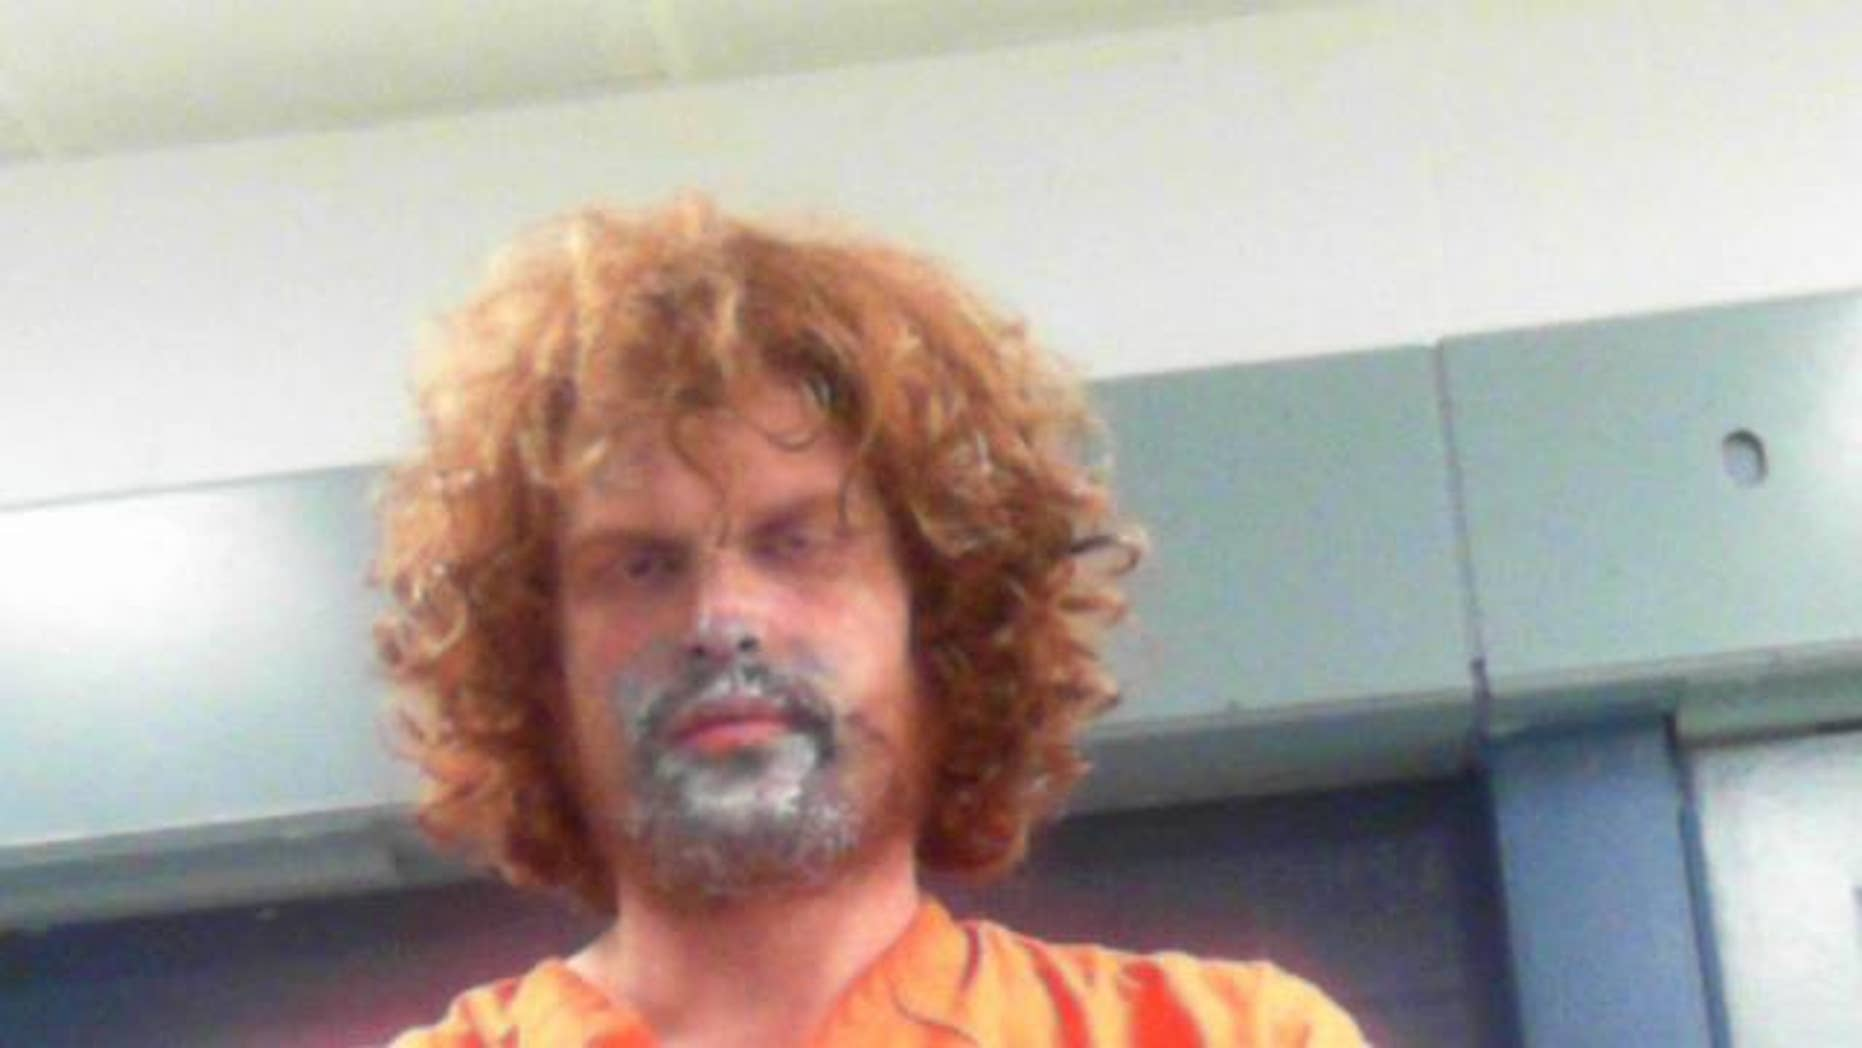 Glenn Casdorph, 30, allegedly huffed spray paint and then beat his mother with a spatula on Thursday, according to local news reports.